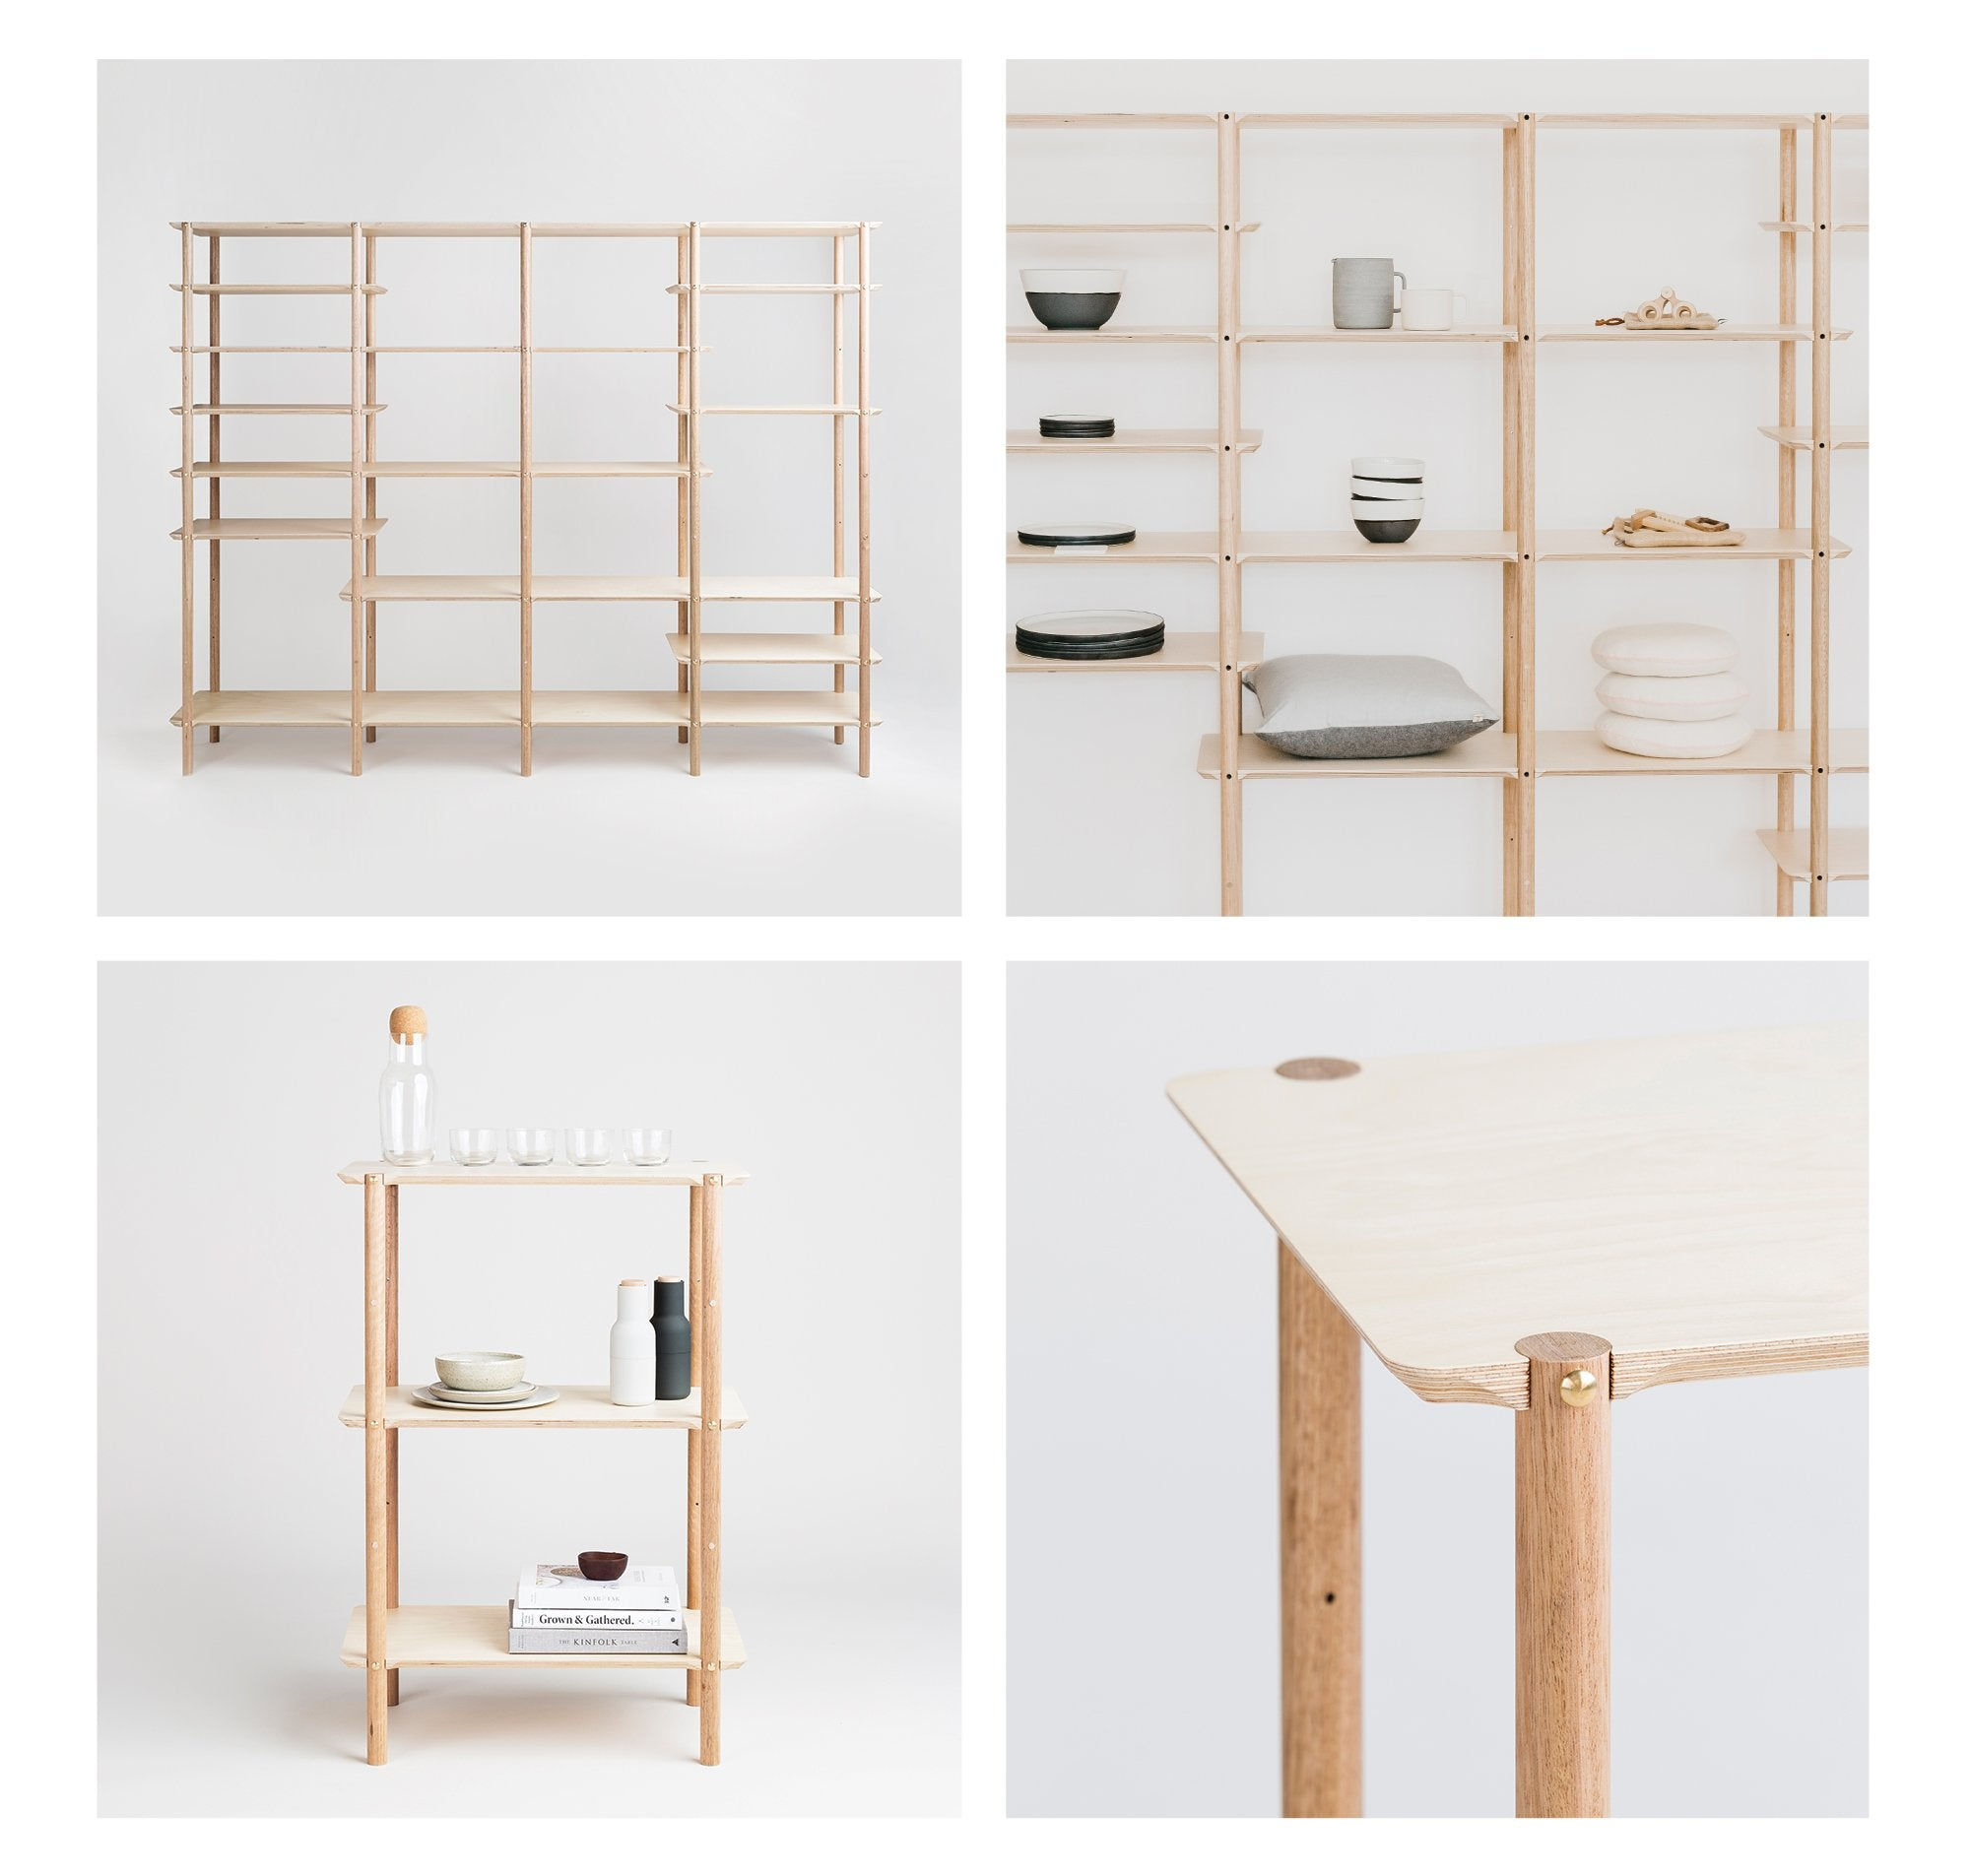 The modular Shibui Shelving Collection is made in Melbourne